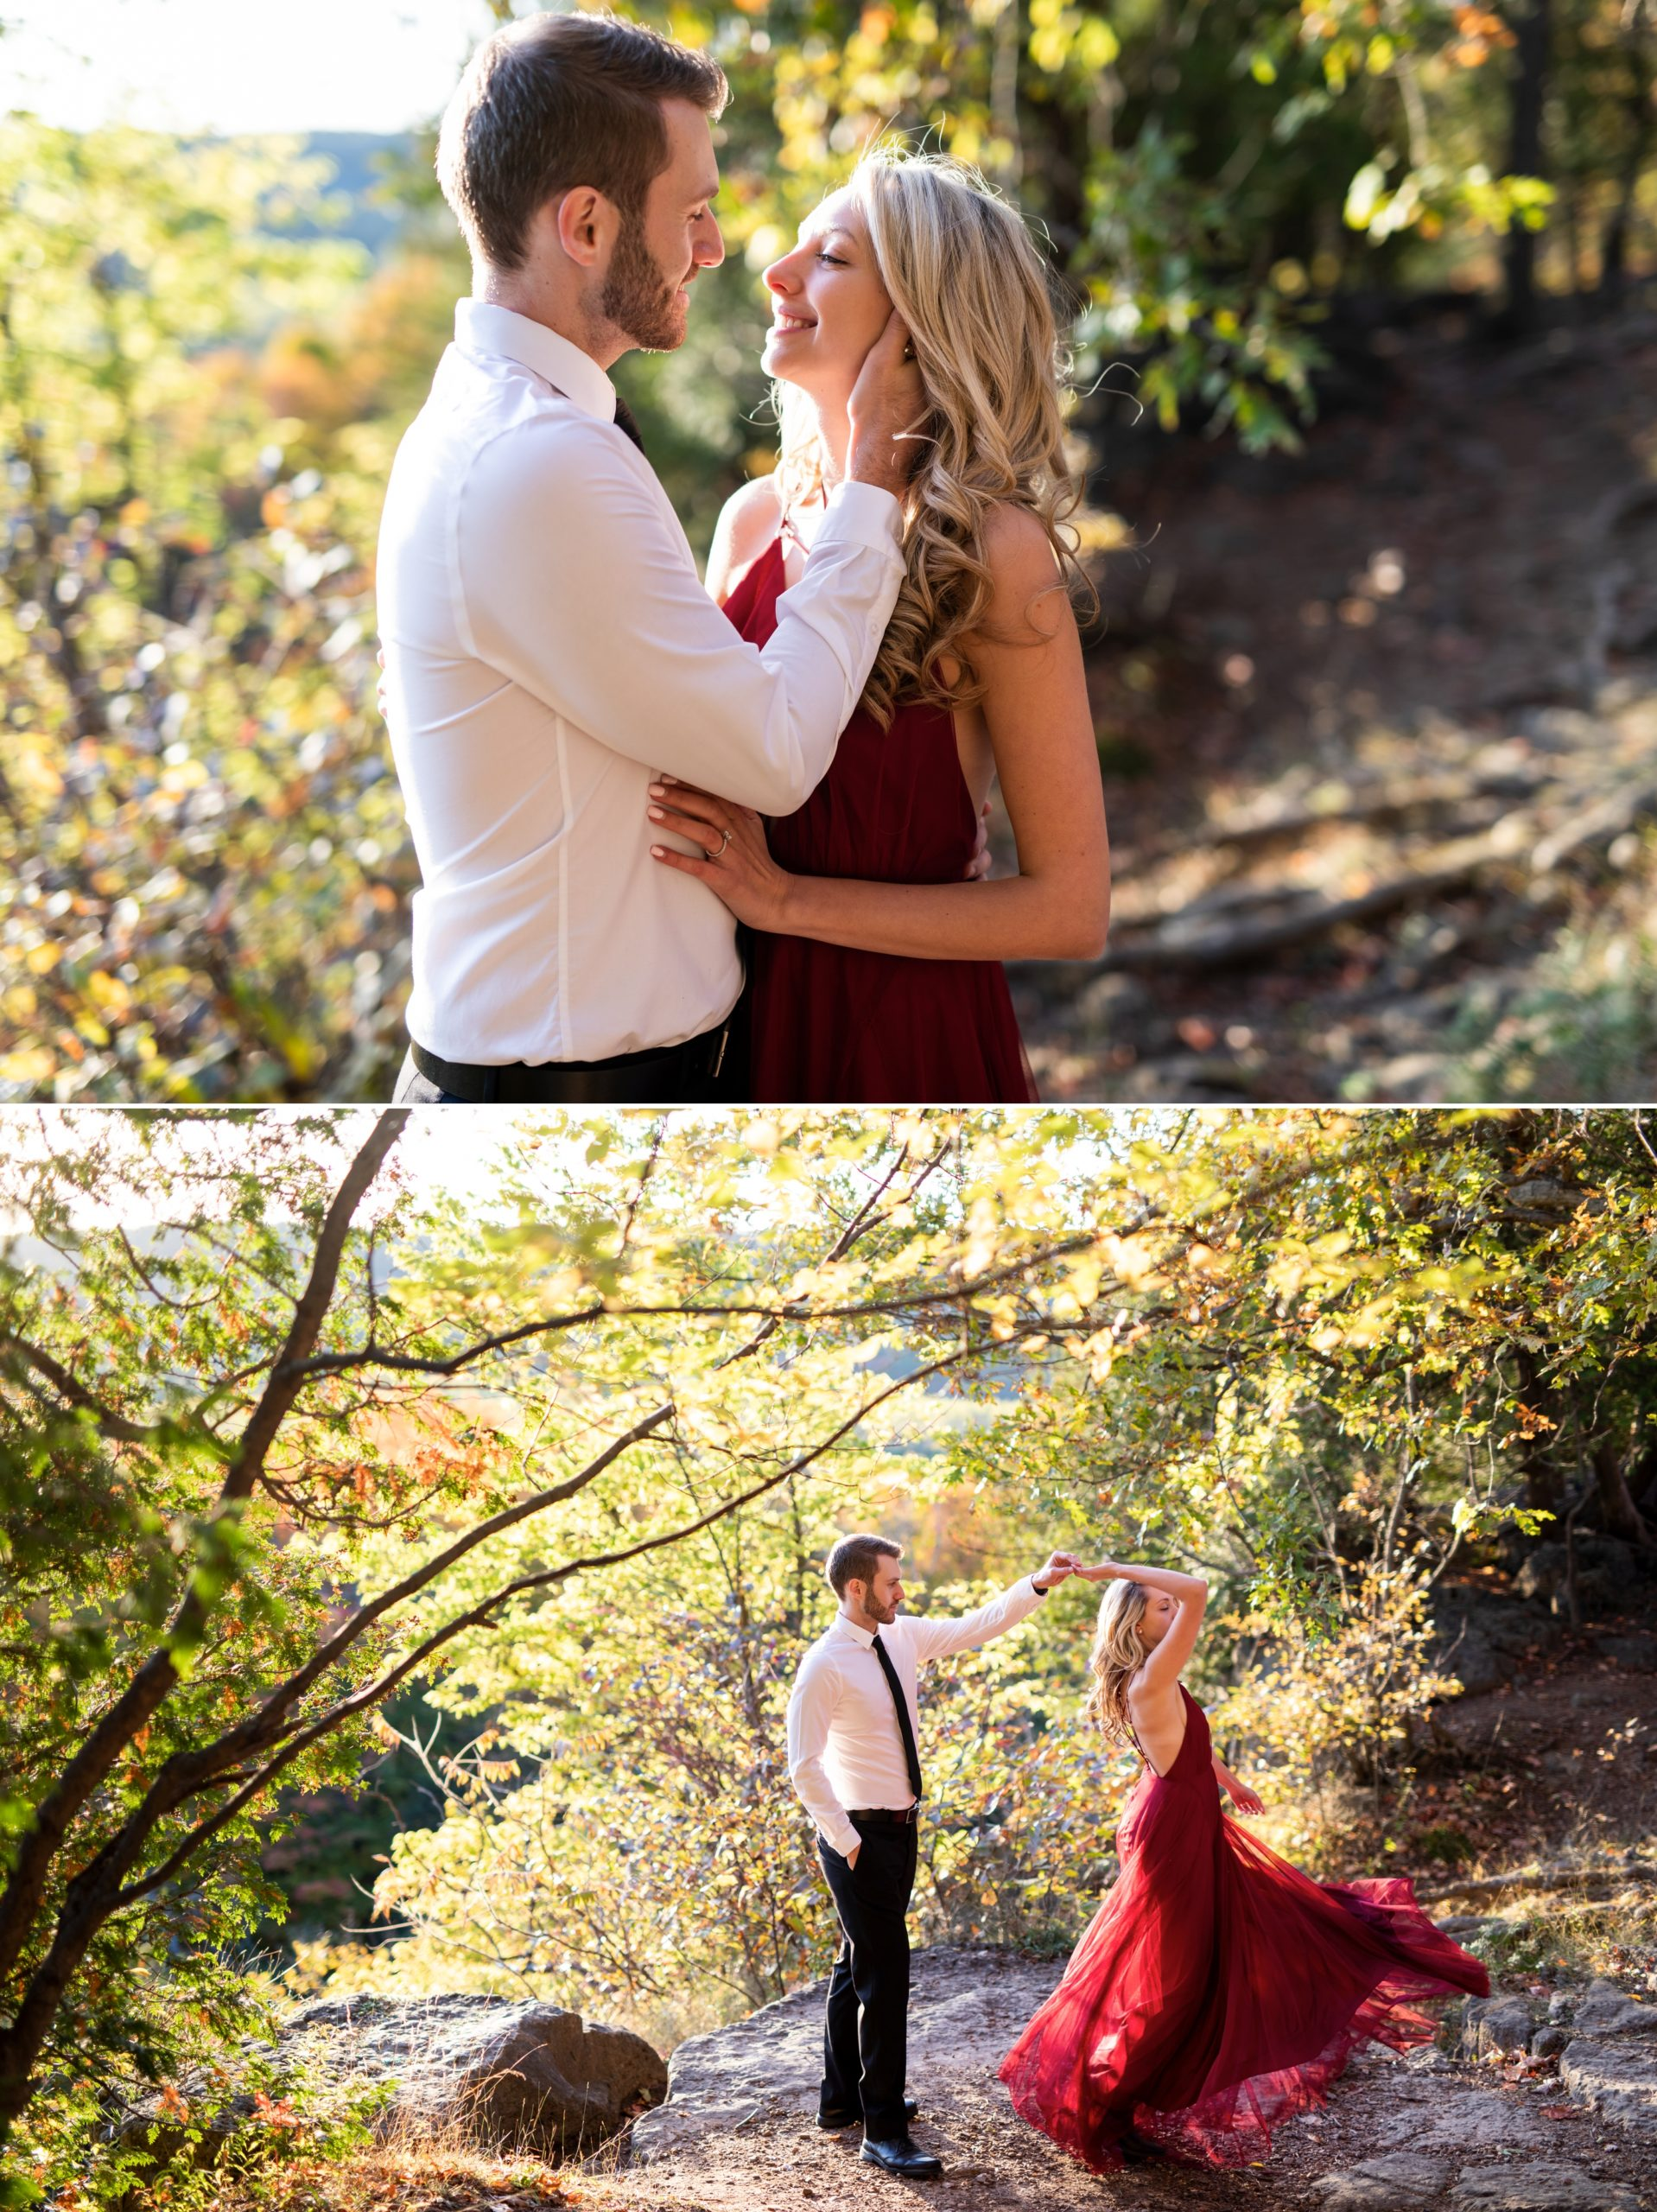 Dance Forest Rattlesnake Point Fall Autumn Engagement Milton Zsuzsi Pal Photography